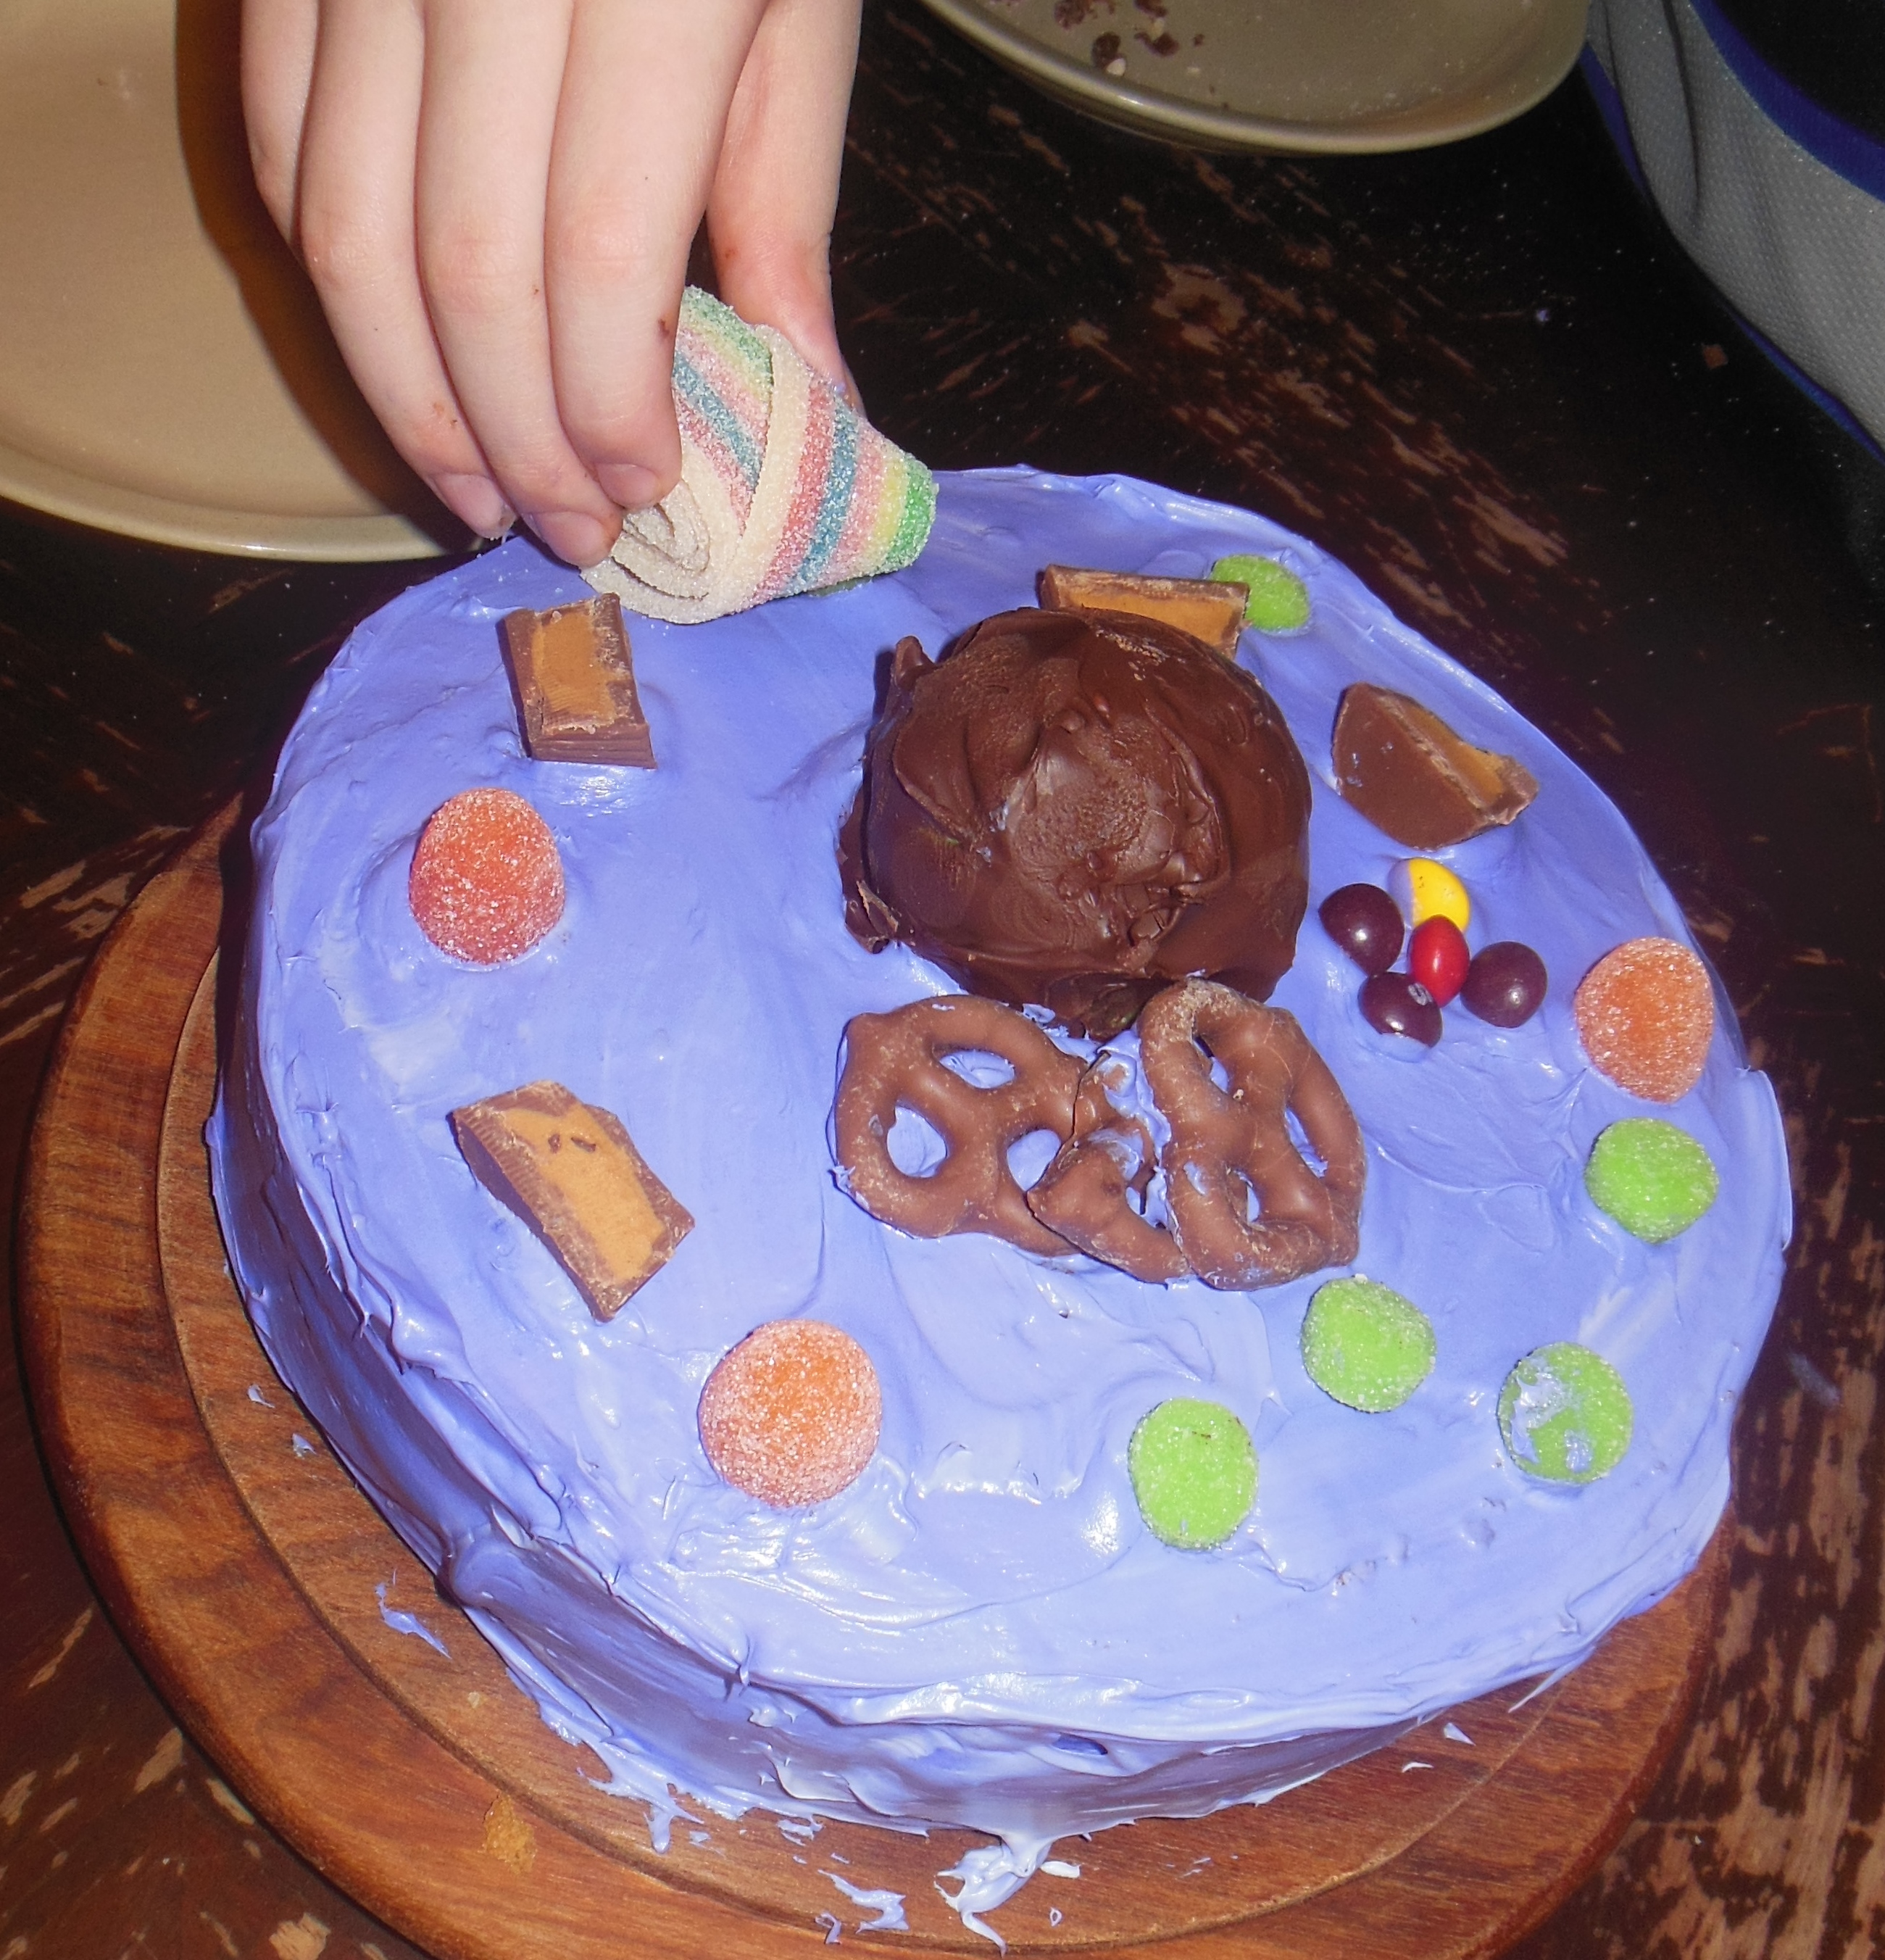 Animal Cell Made Of Cake And Candy